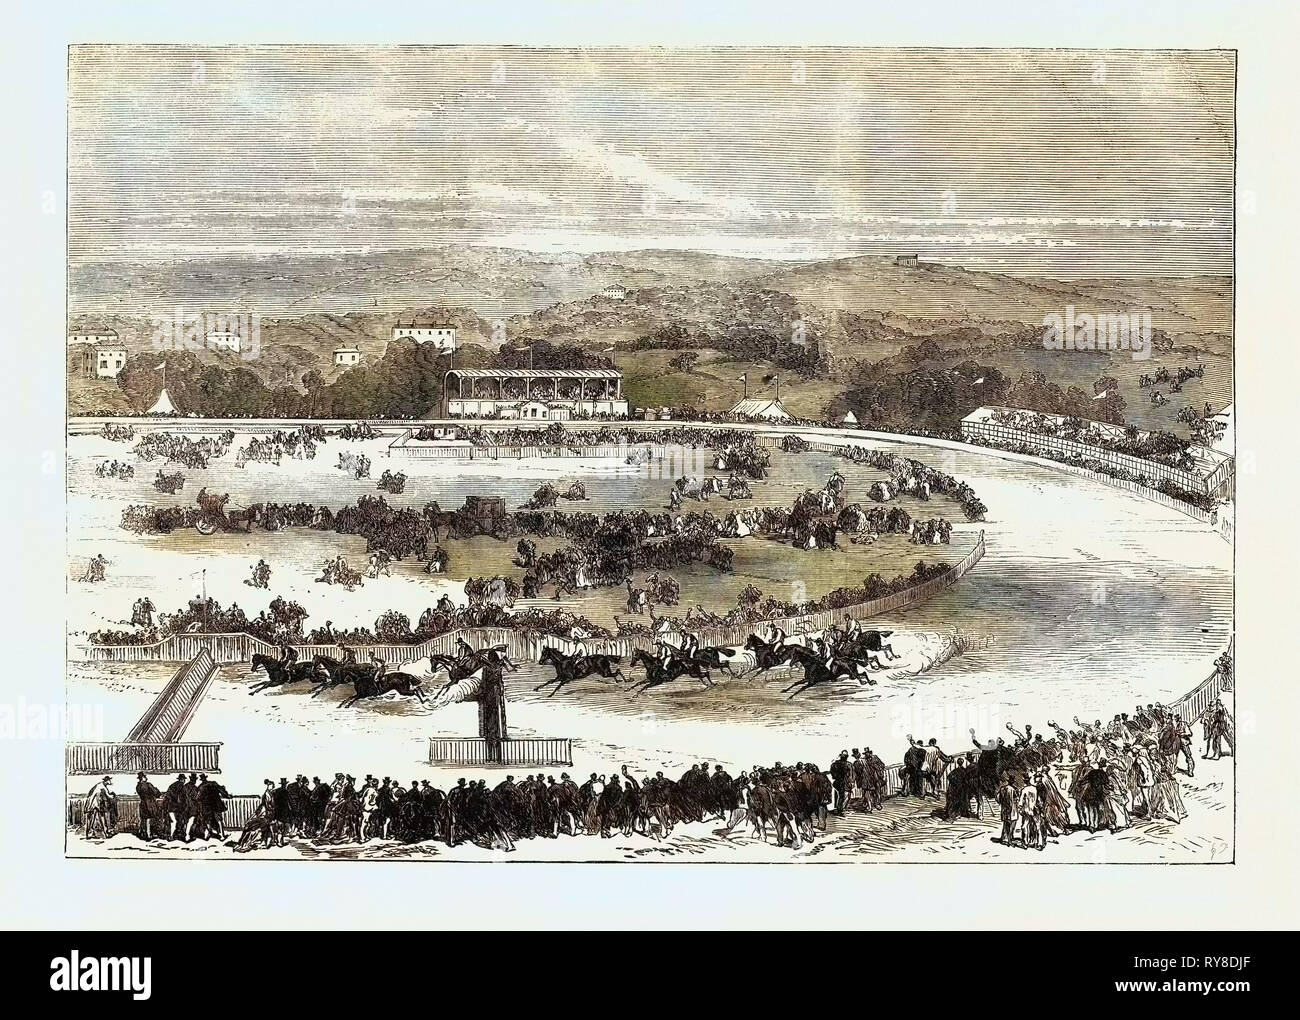 Cork Park Races: The Grand National Steeplechase 1869 Stock Photo